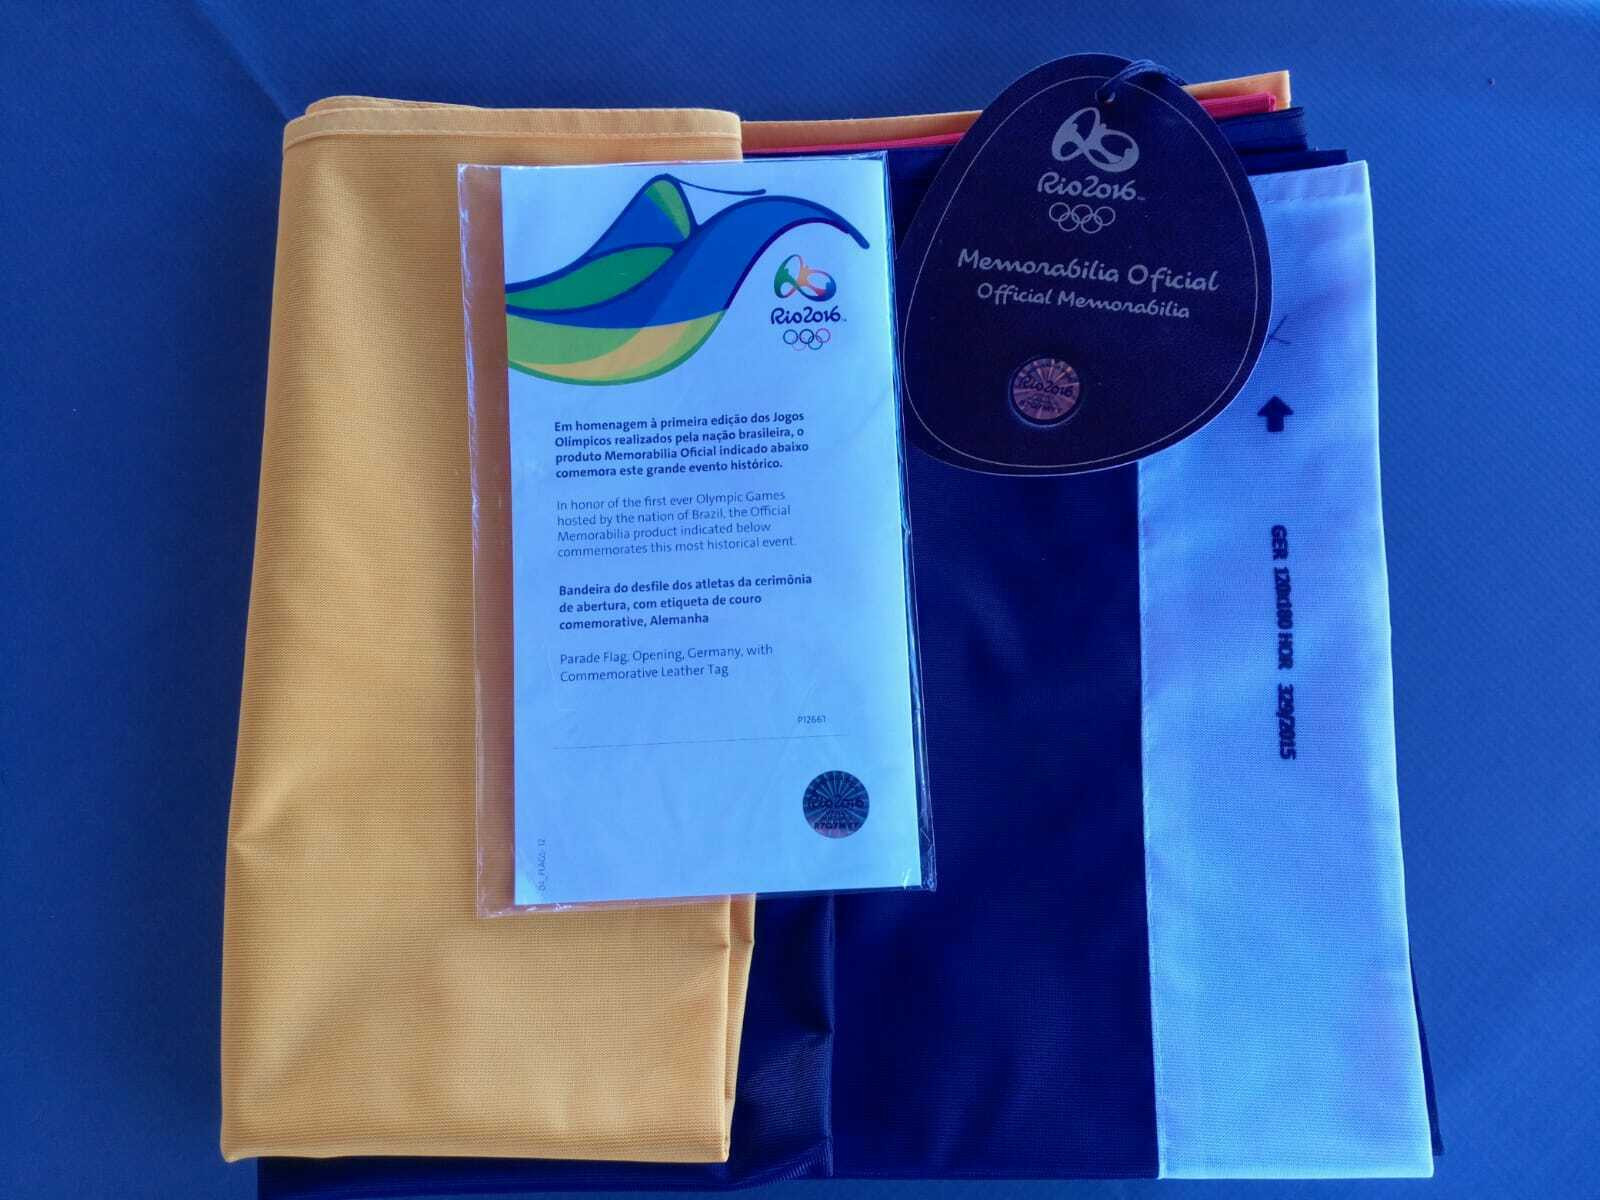 A dealer in Orlando is selling the German flag from the Rio 2016 Opening Ceremony ©eBay